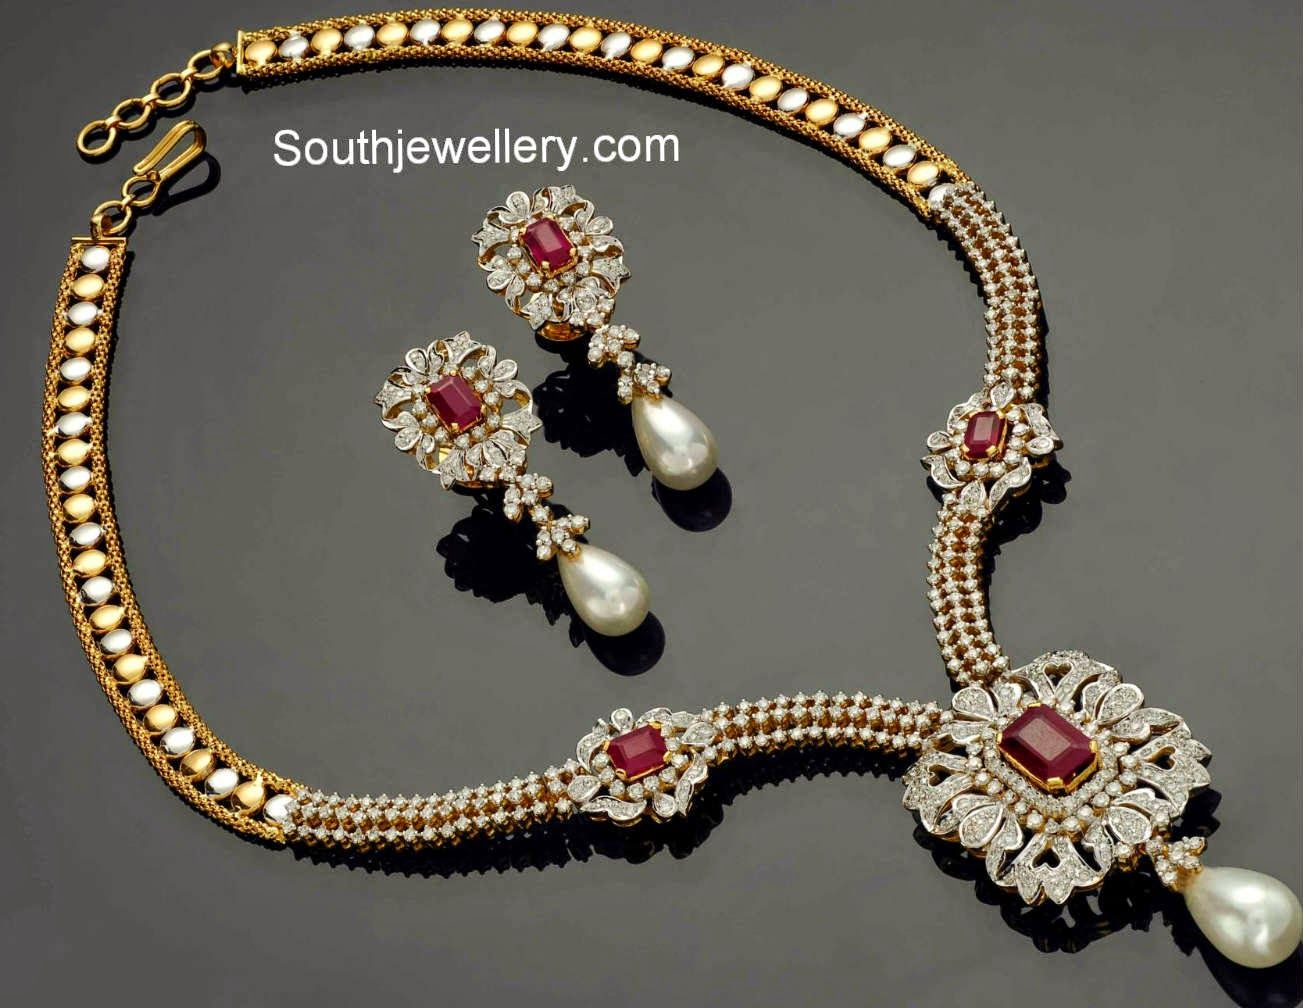 Stylish necklace set studded with sparkling diamonds rubies and